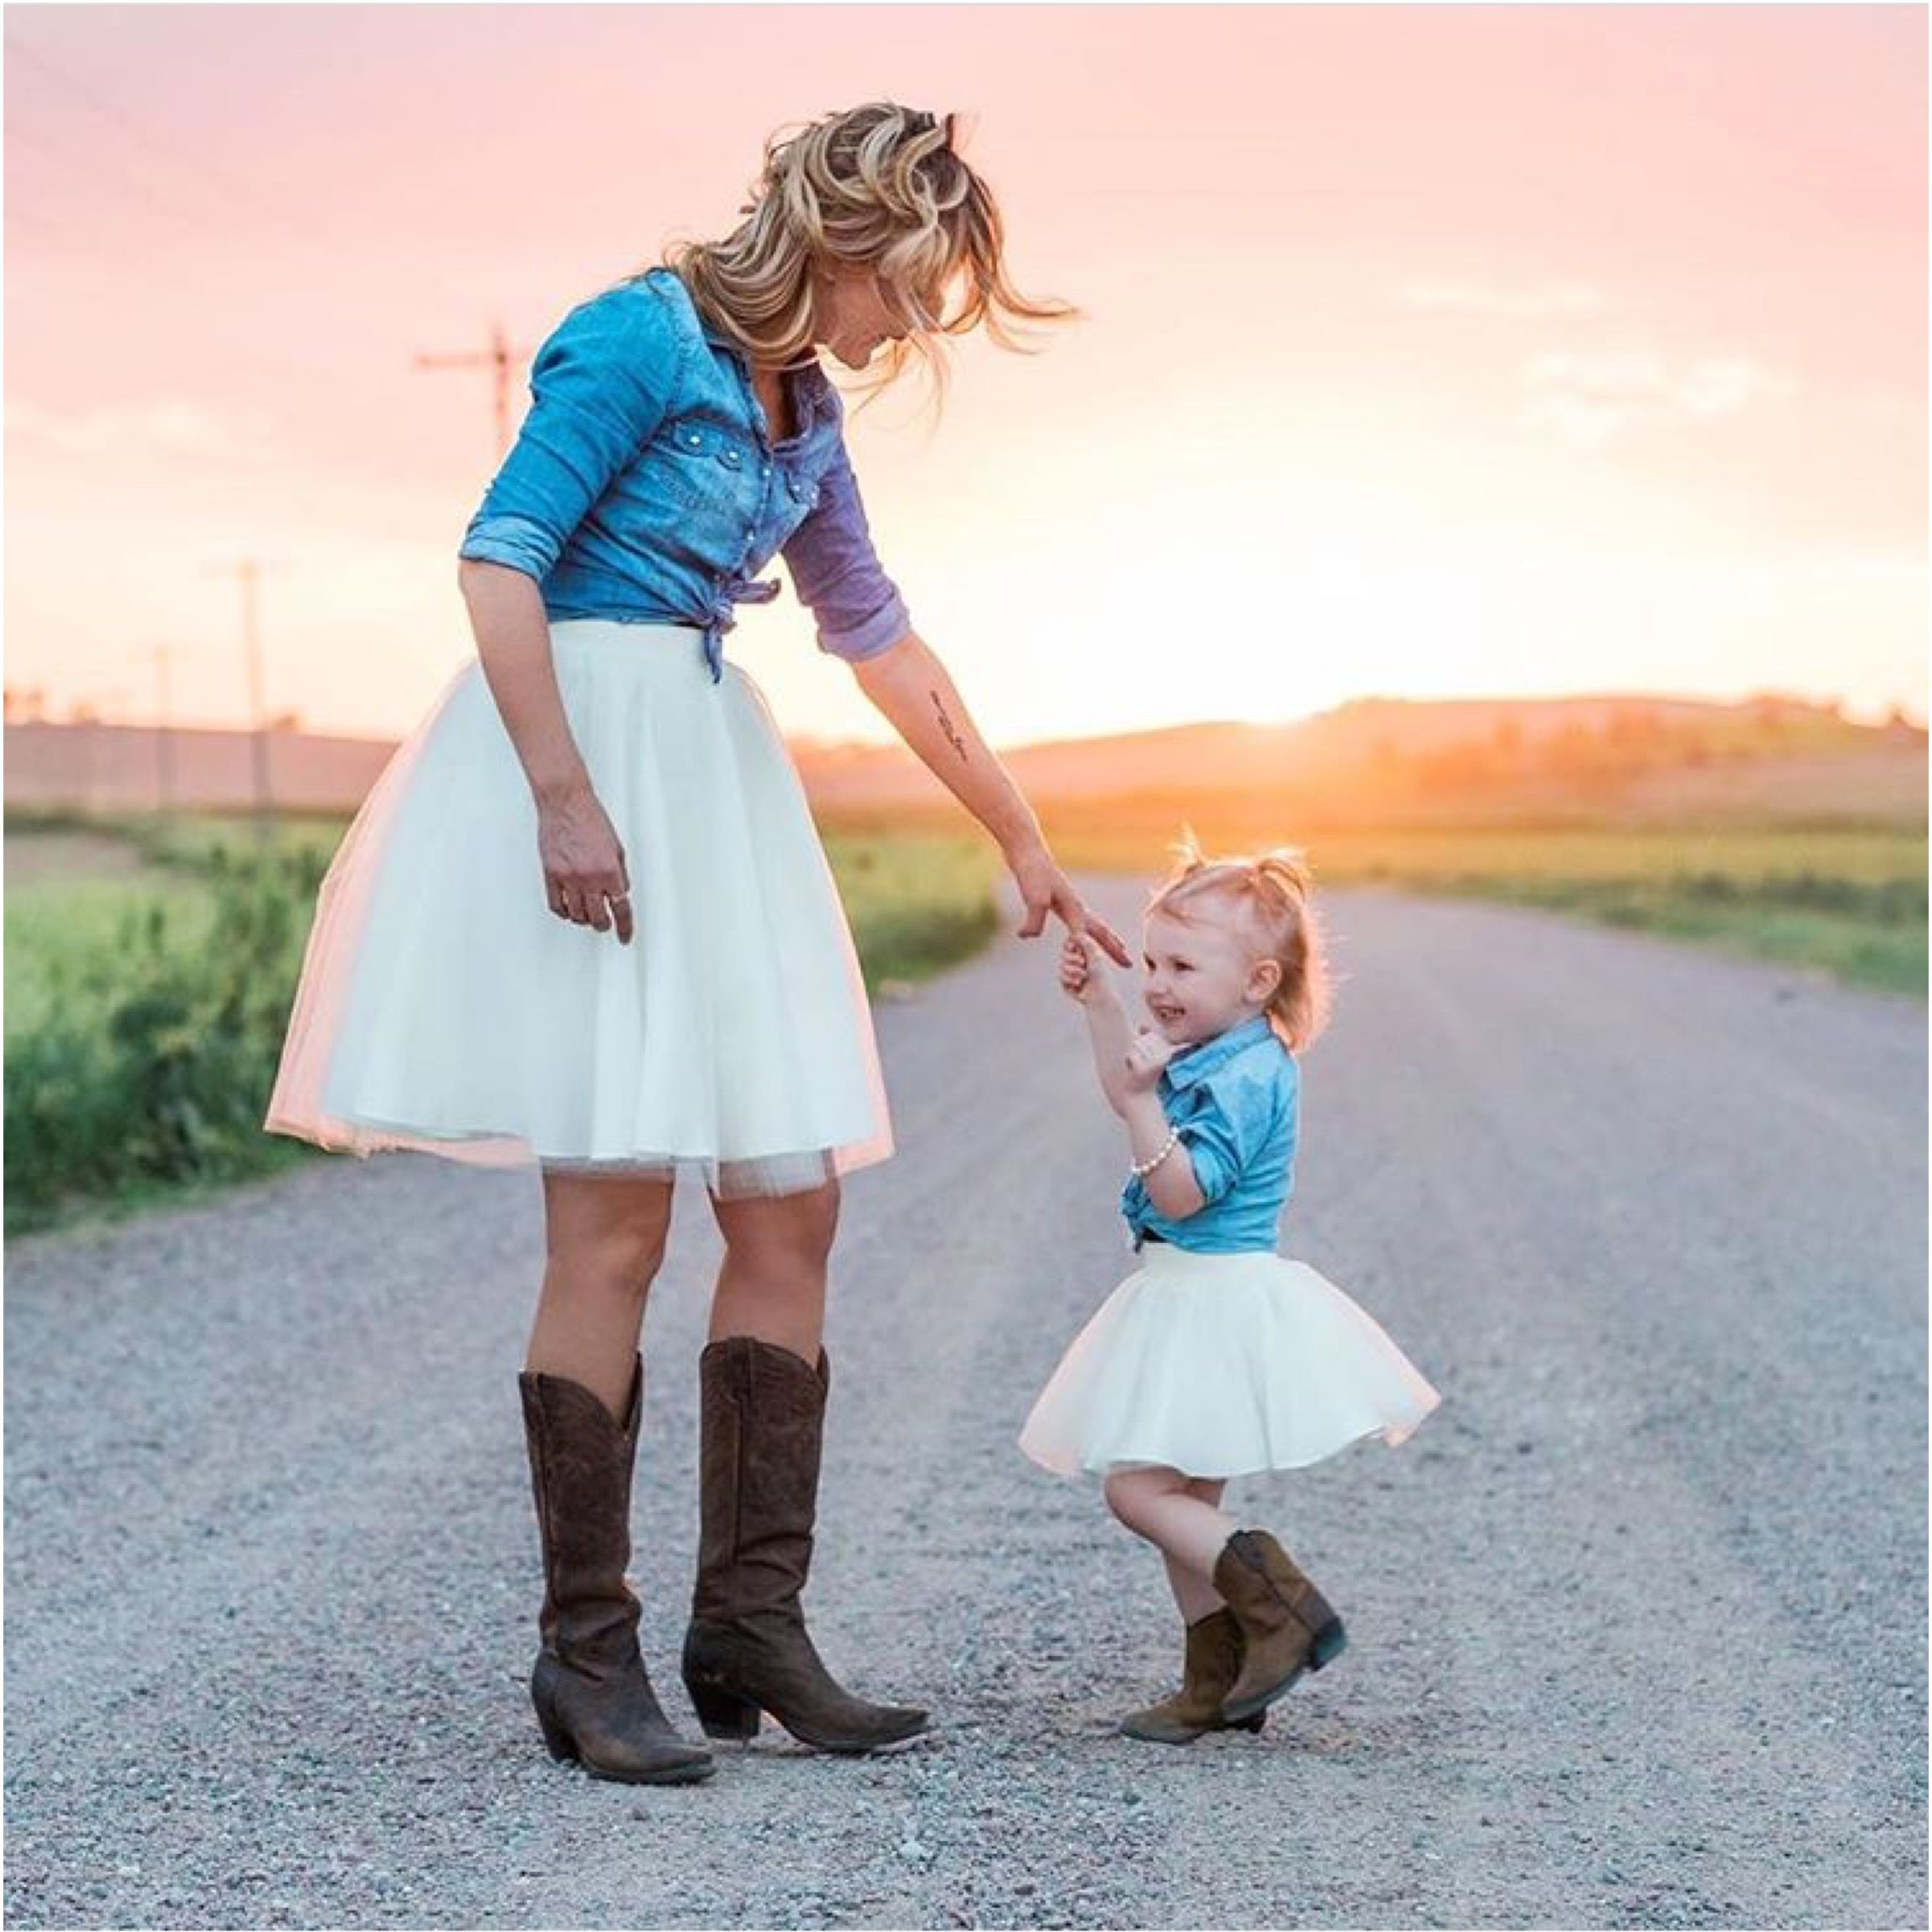 885bb97543 Cowboy boots and tulle skirts... Mommy and Me Ashley Tulle Skirts by Bliss  Tulle // Photography: Sarah Ann Photography